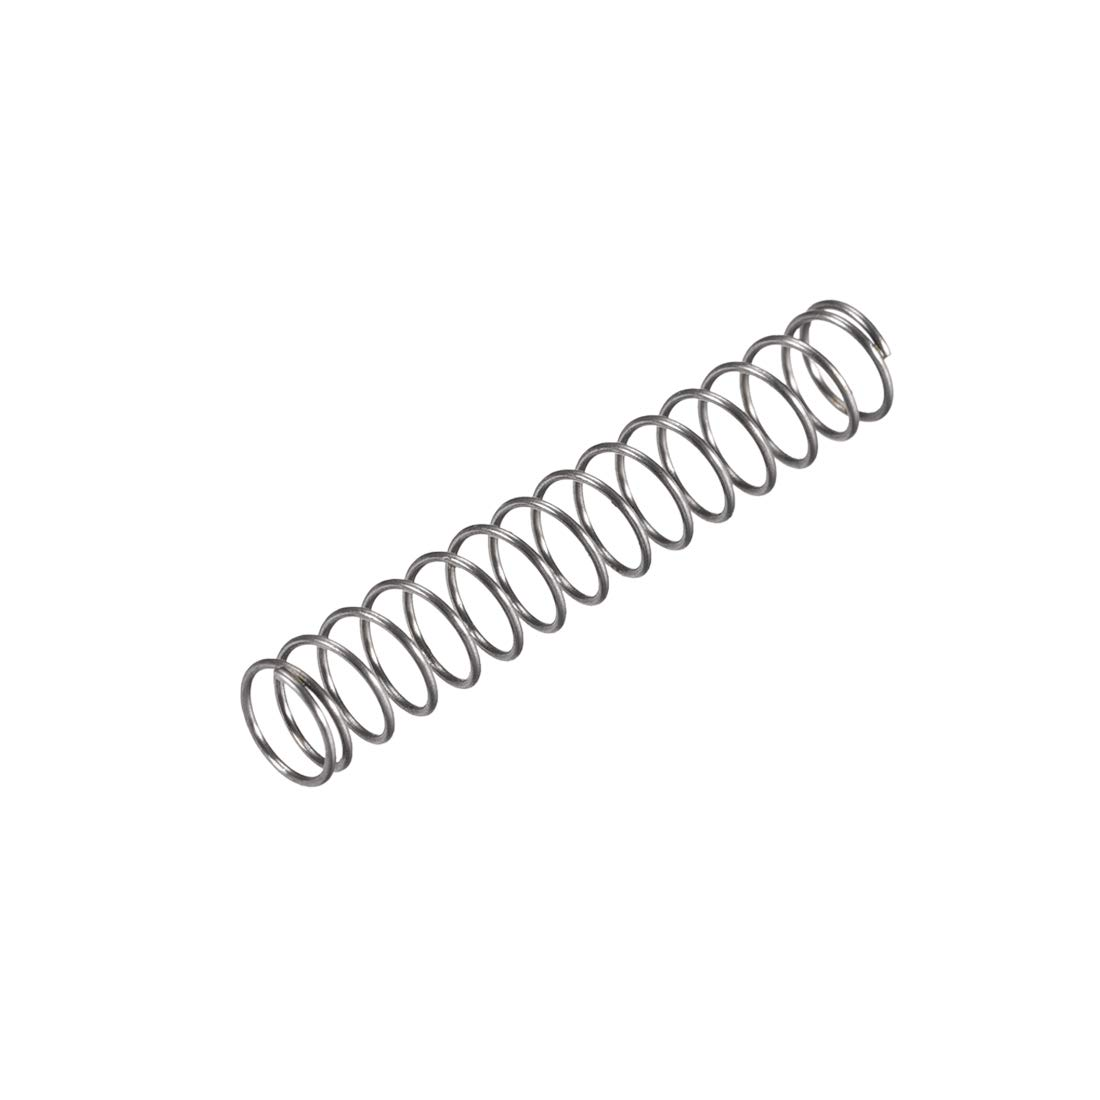 uxcell Compression Spring,6mm OD, 0.5mm Wire Size, 19.25mm Compressed Length, 35mm Free Length,8N Load Capacity,Gray,30pcs